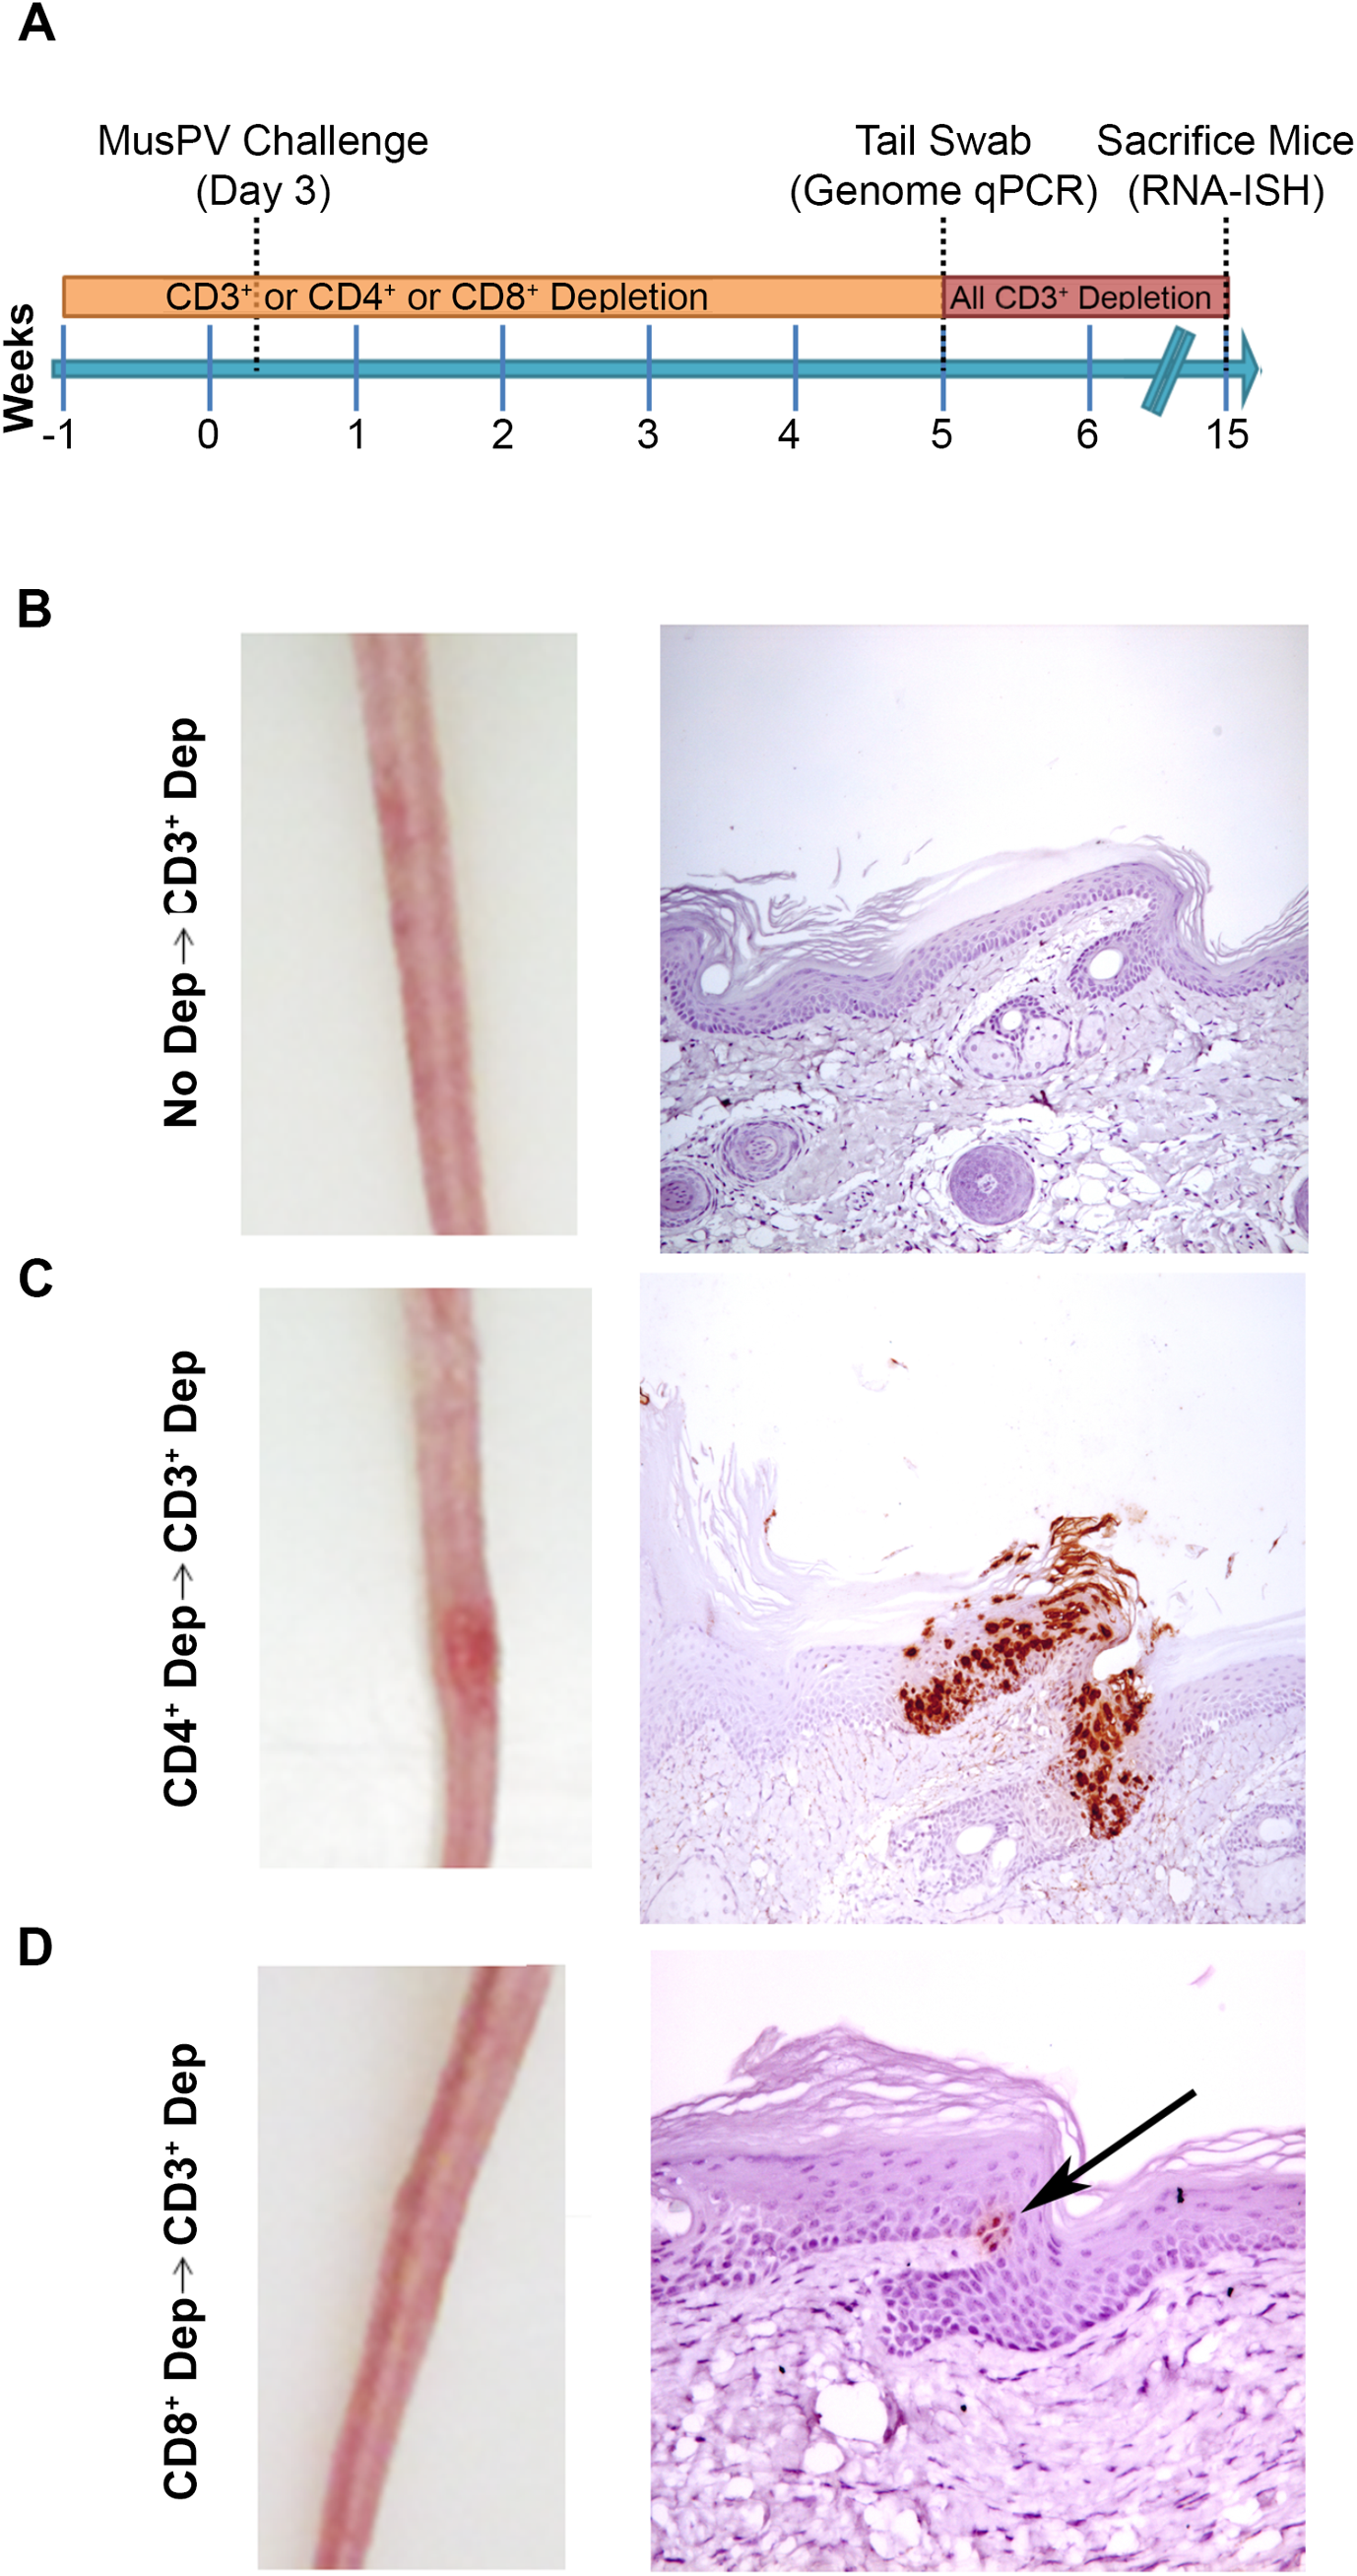 Re-activation of MusPV1 infection.